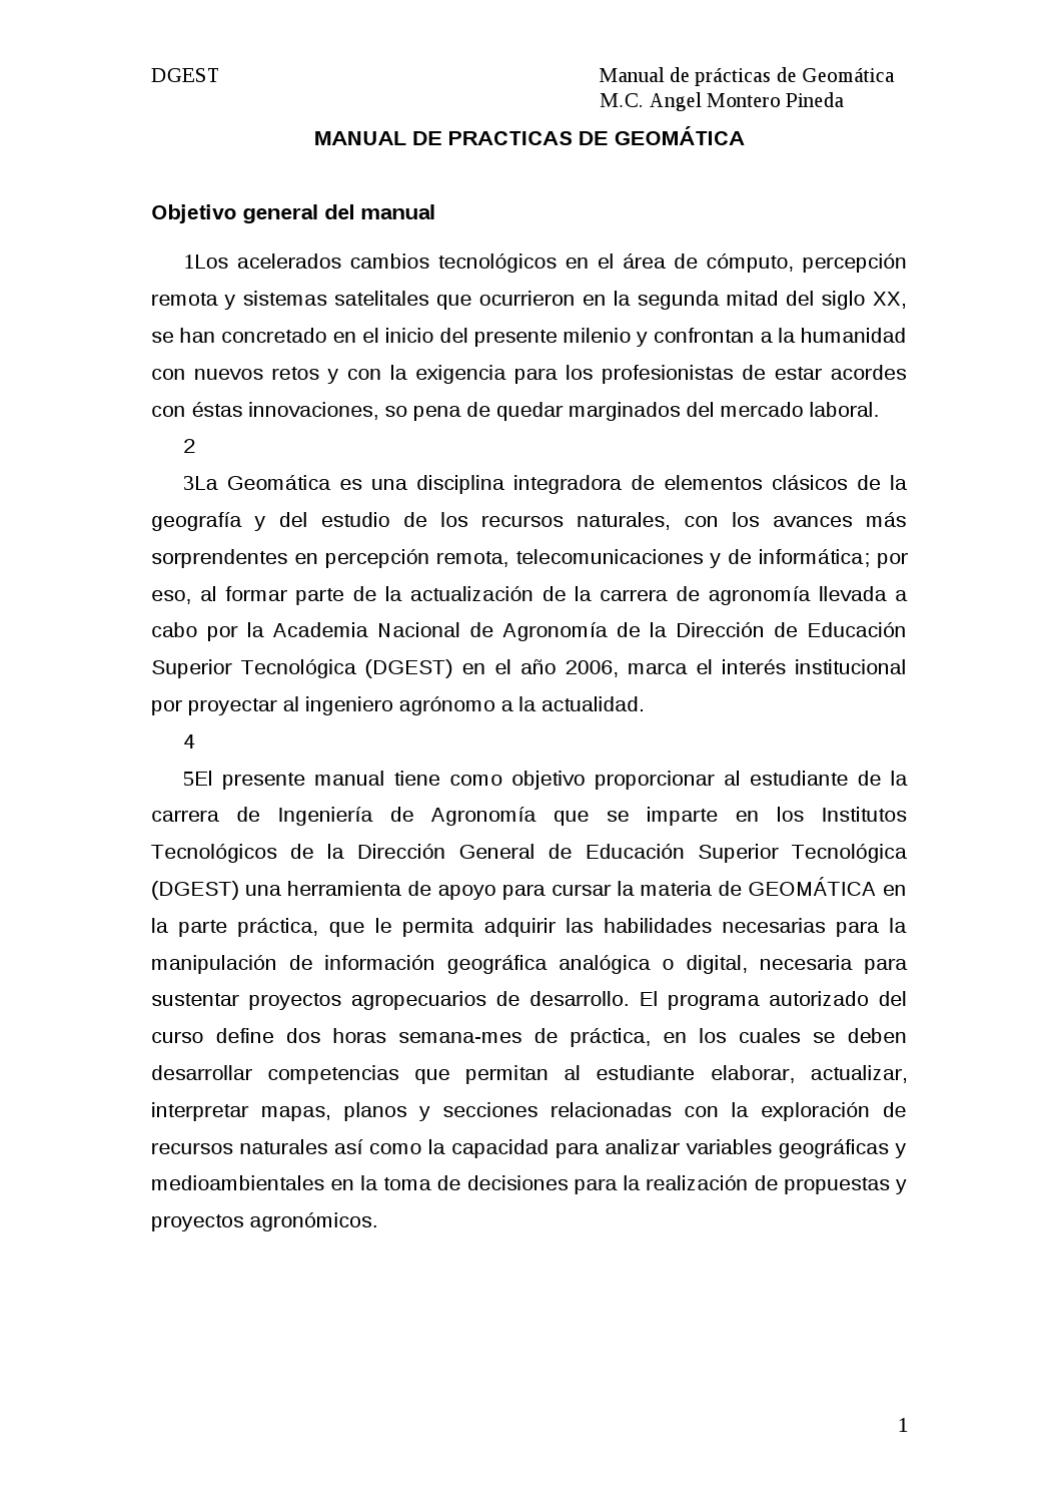 Manual de Prácticas de Geomática by Angel Montero - issuu